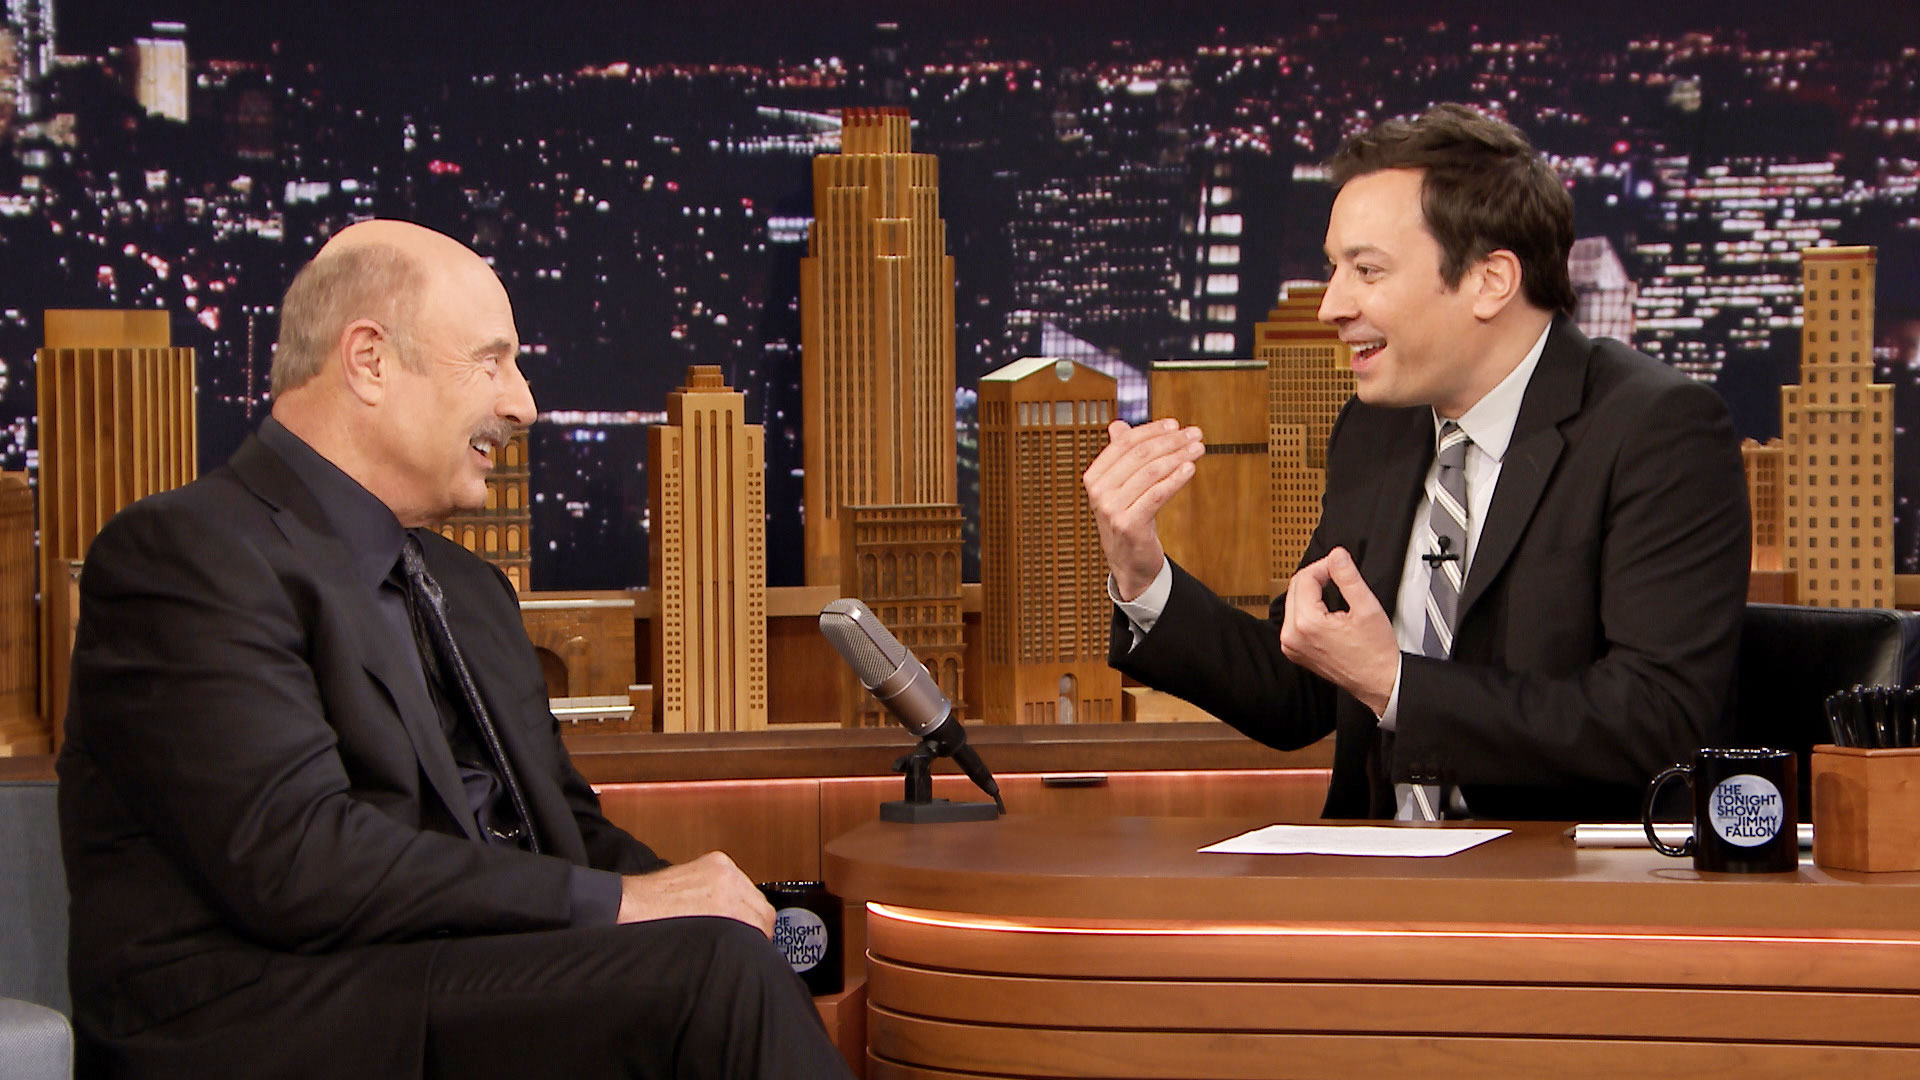 Two Truths and a Lie with Dr. Phil